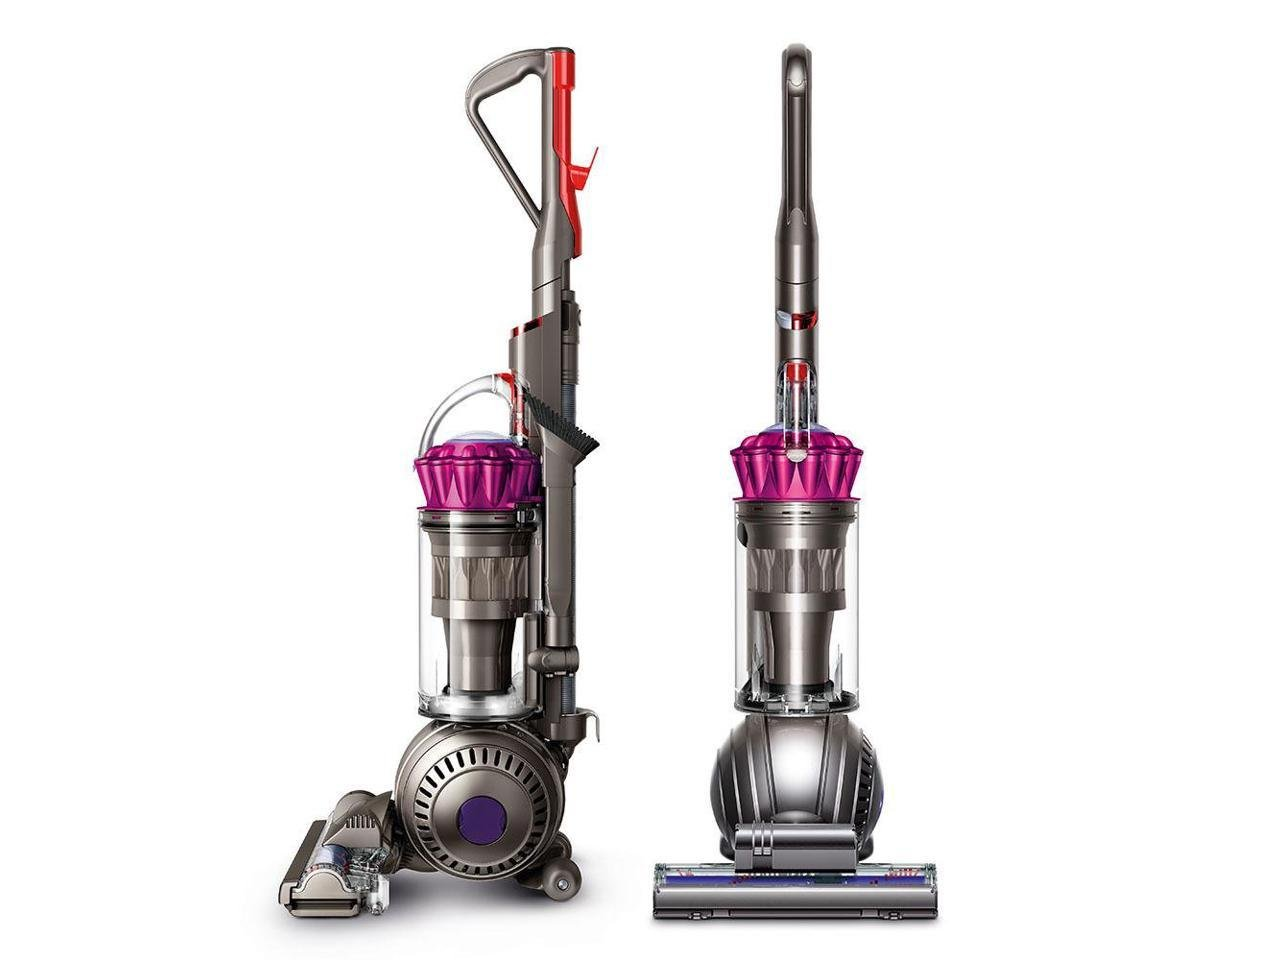 Dyson Ball Multi Floor Origin High Performance HEPA Filter Upright Vacuum Fuchsia - Corded by Dyson